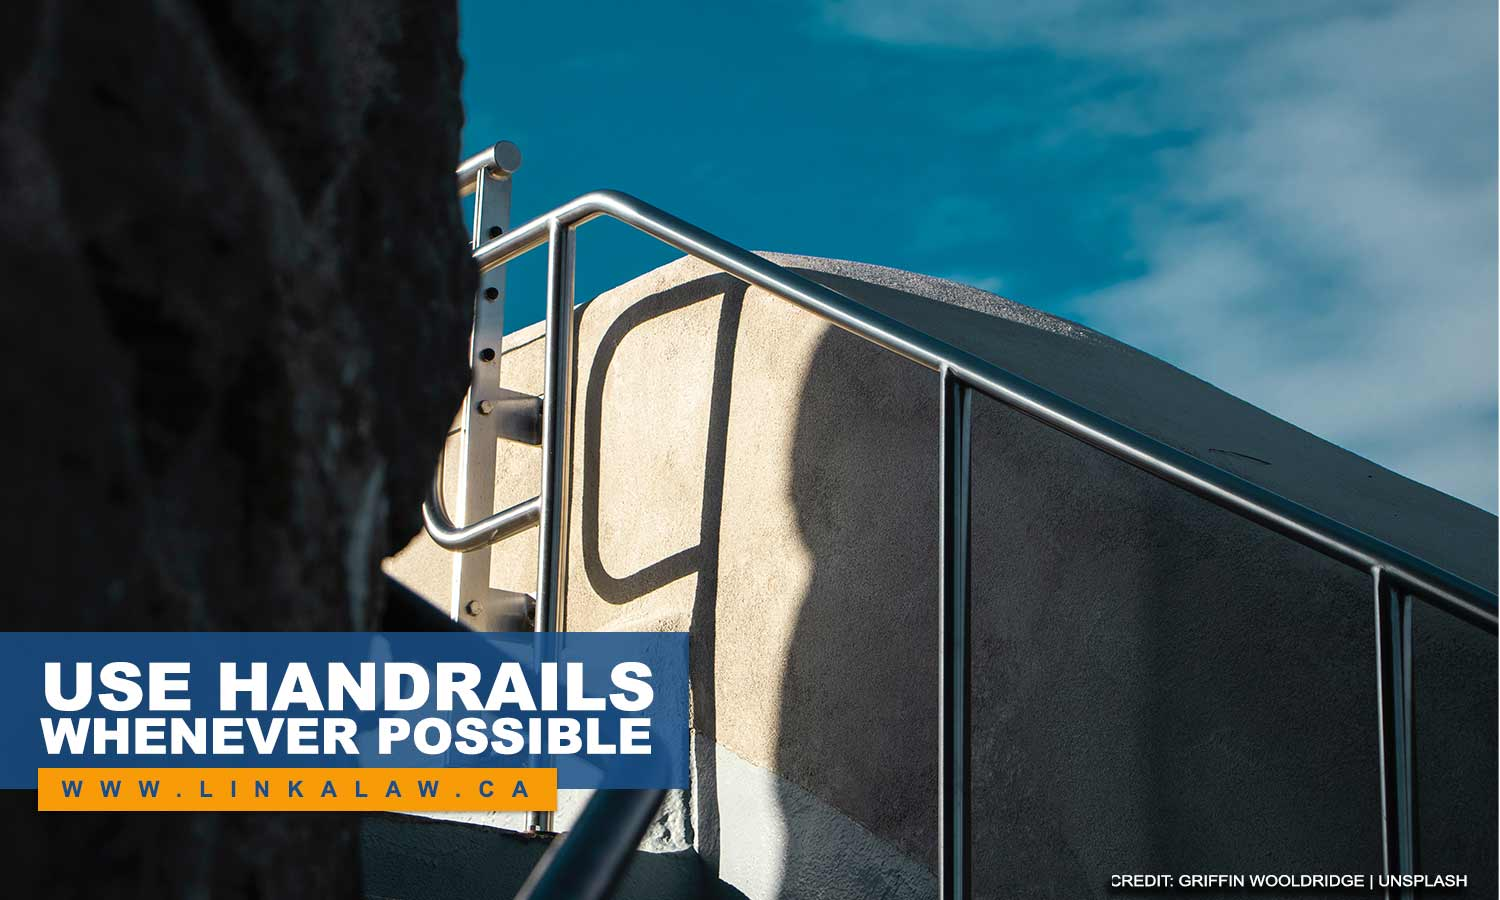 Use handrails whenever possible